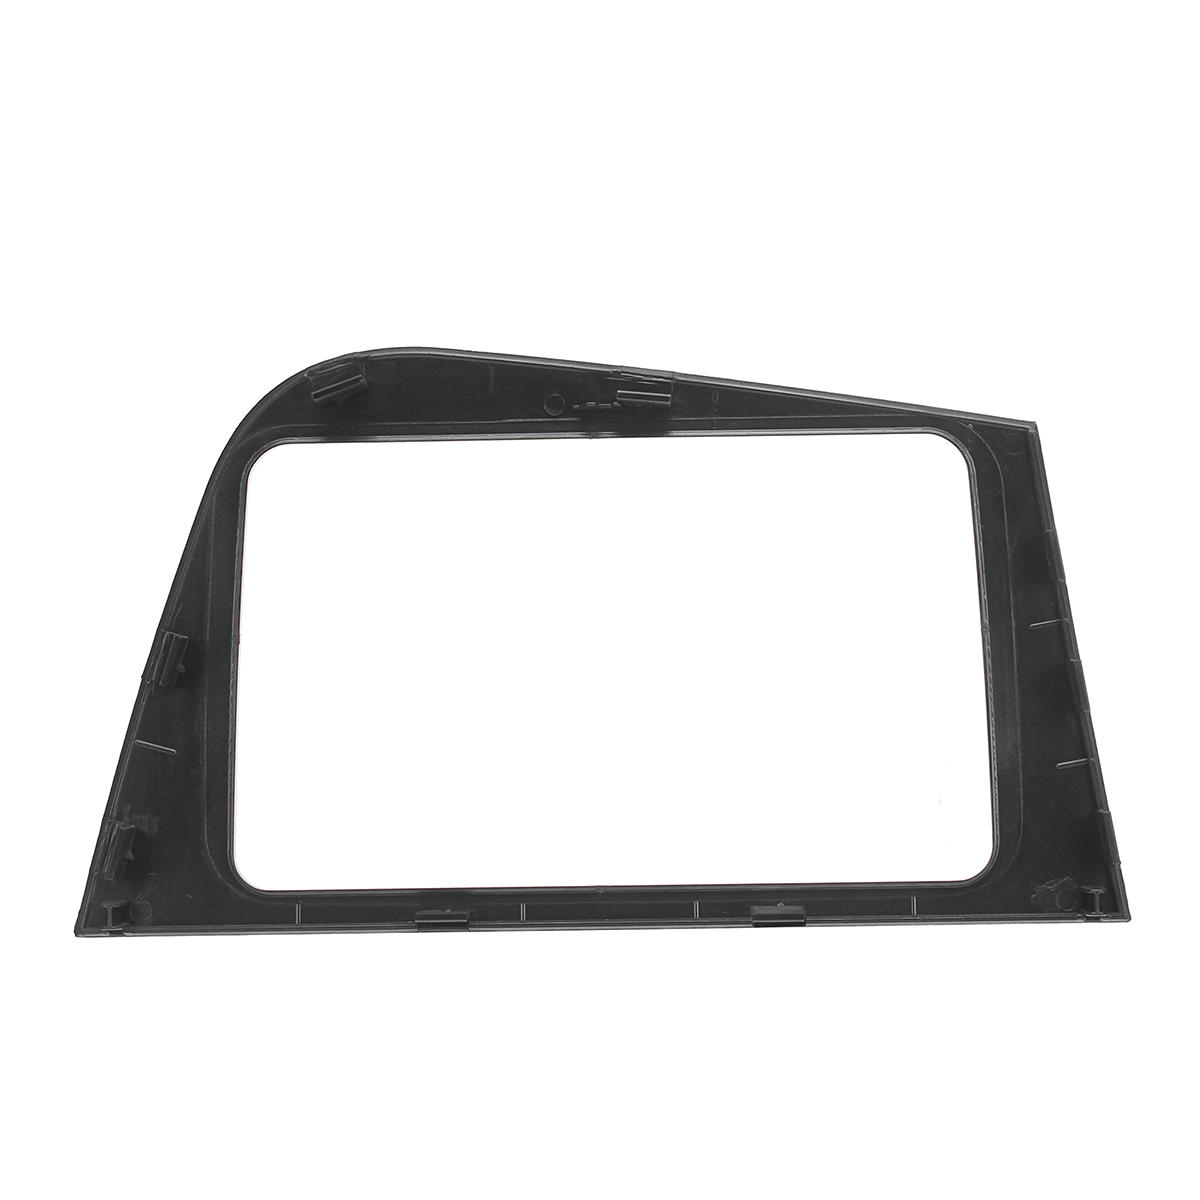 2DIN Radio Fascia Car Stereo Panel Plate Adapter Trim For Seat Leon Right Hand Drive